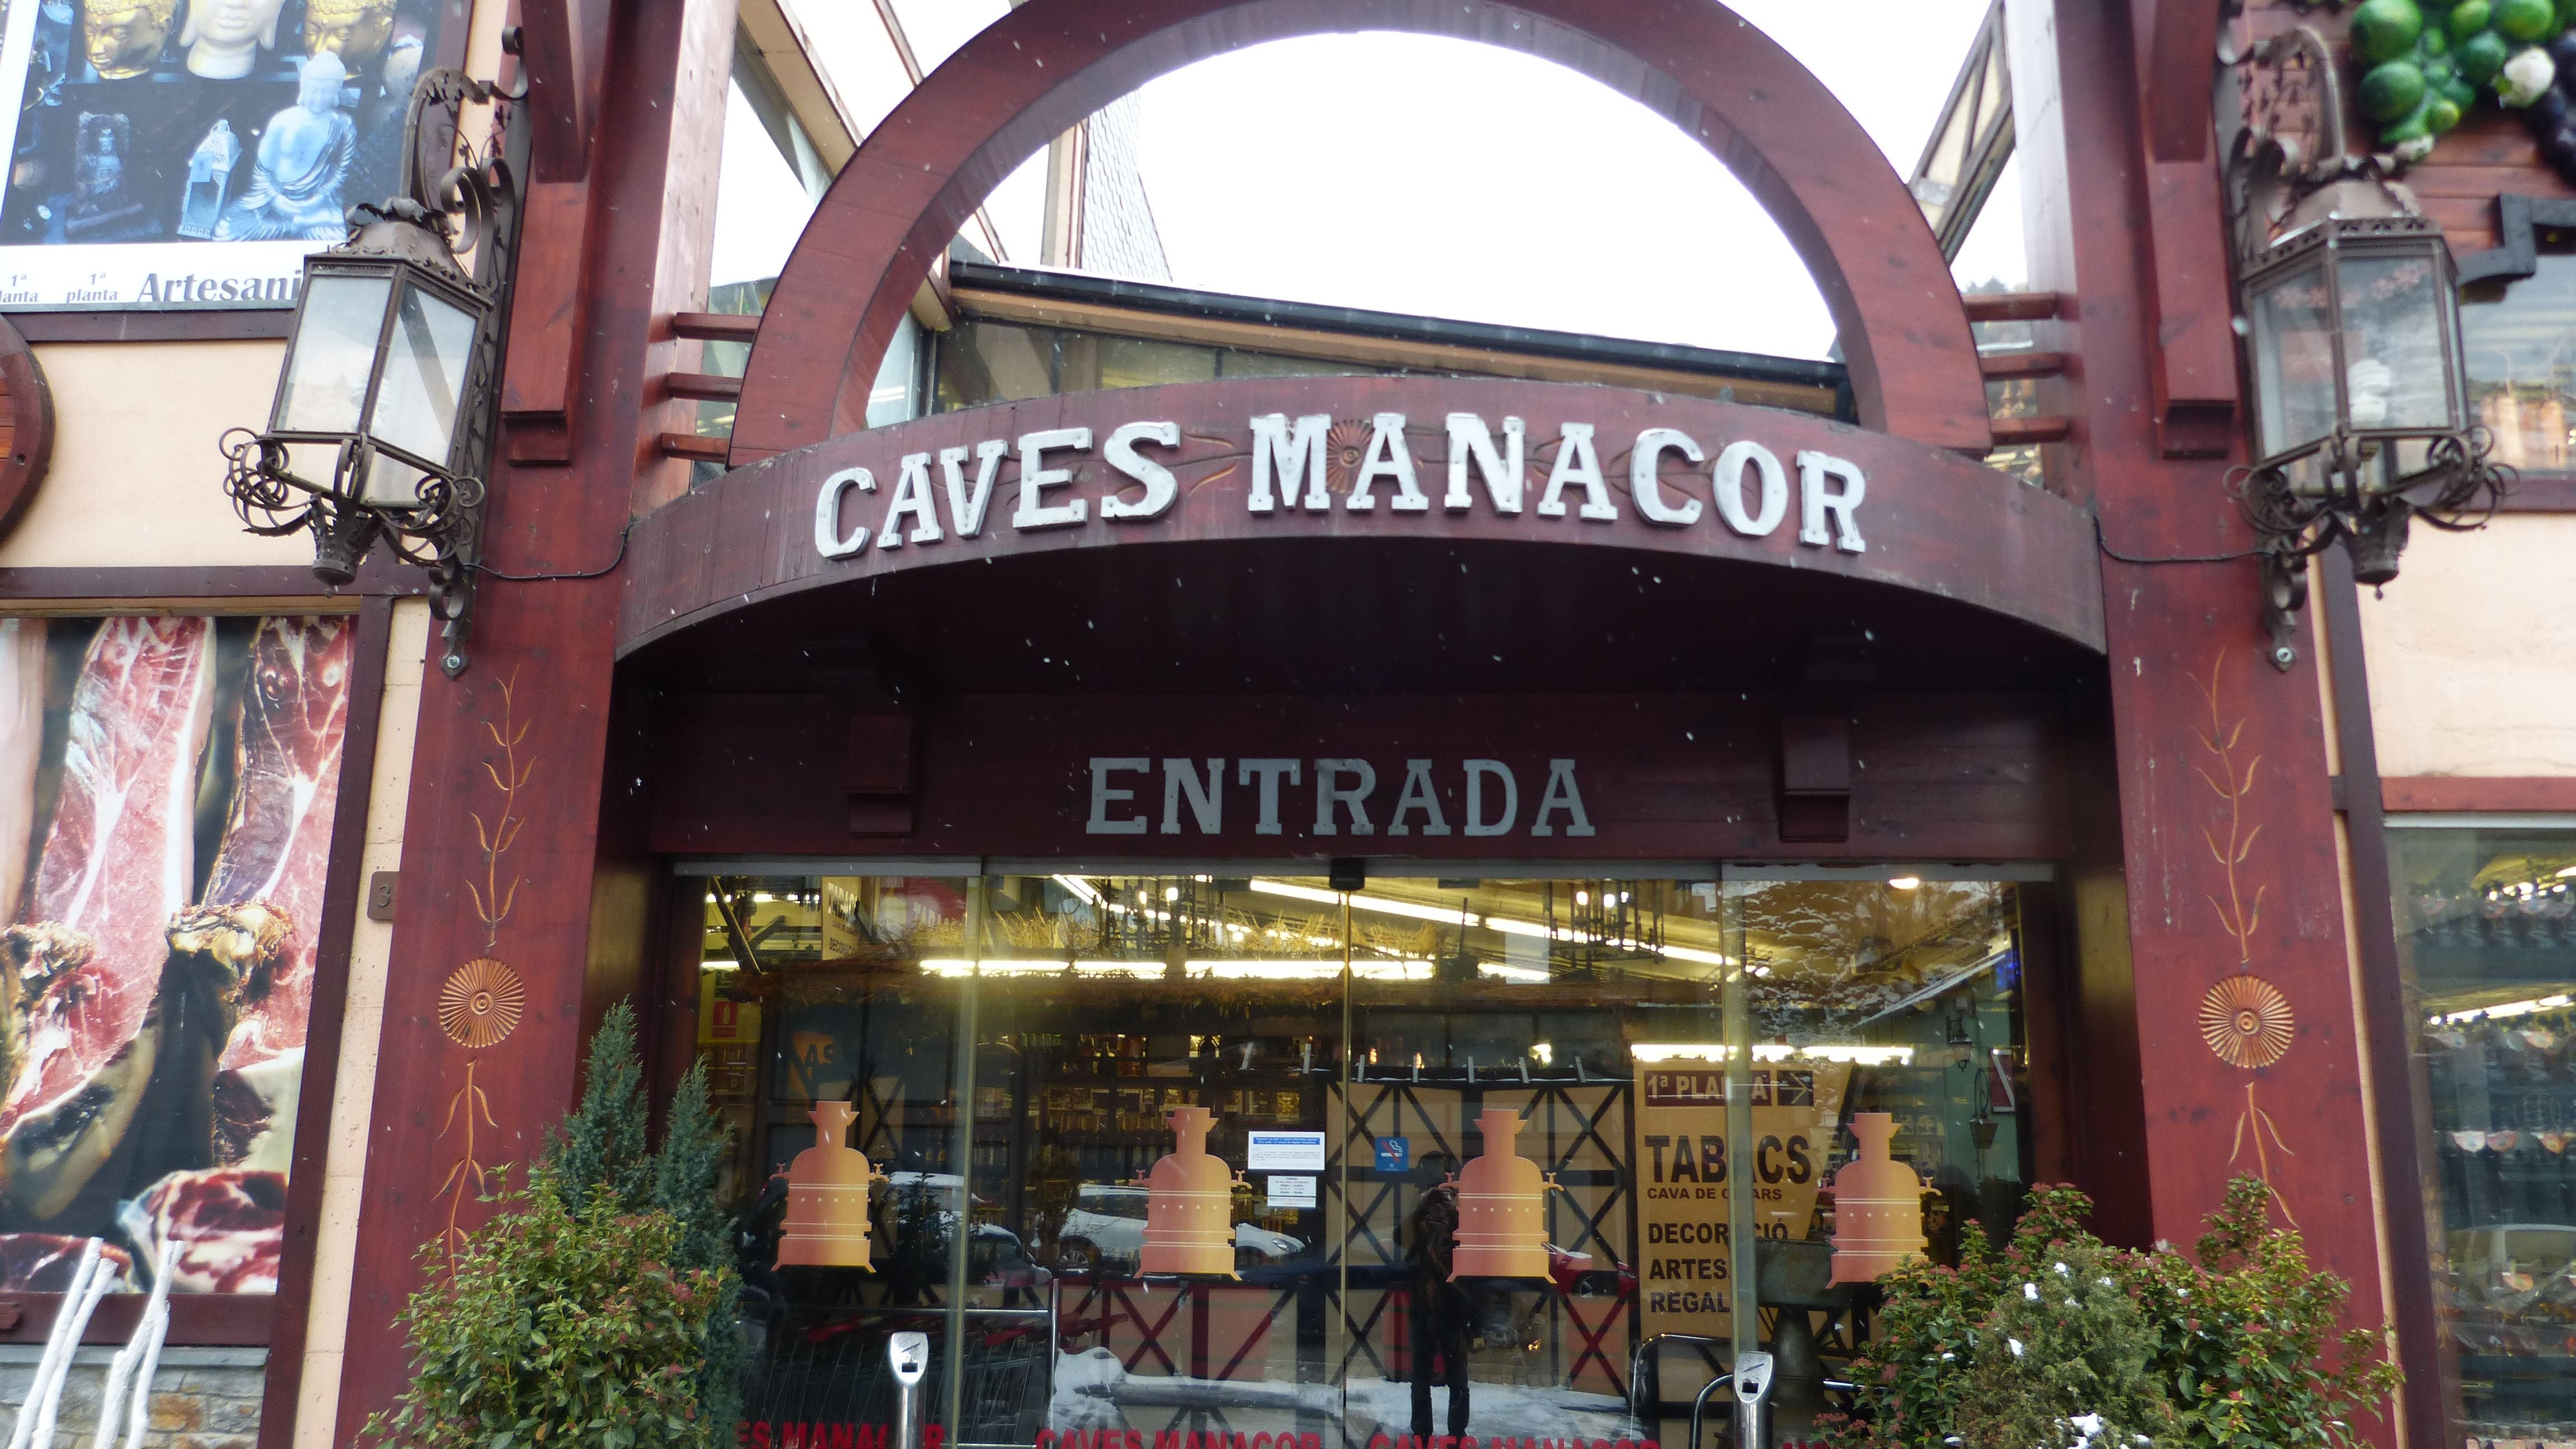 Retail Store in Caves Manacor